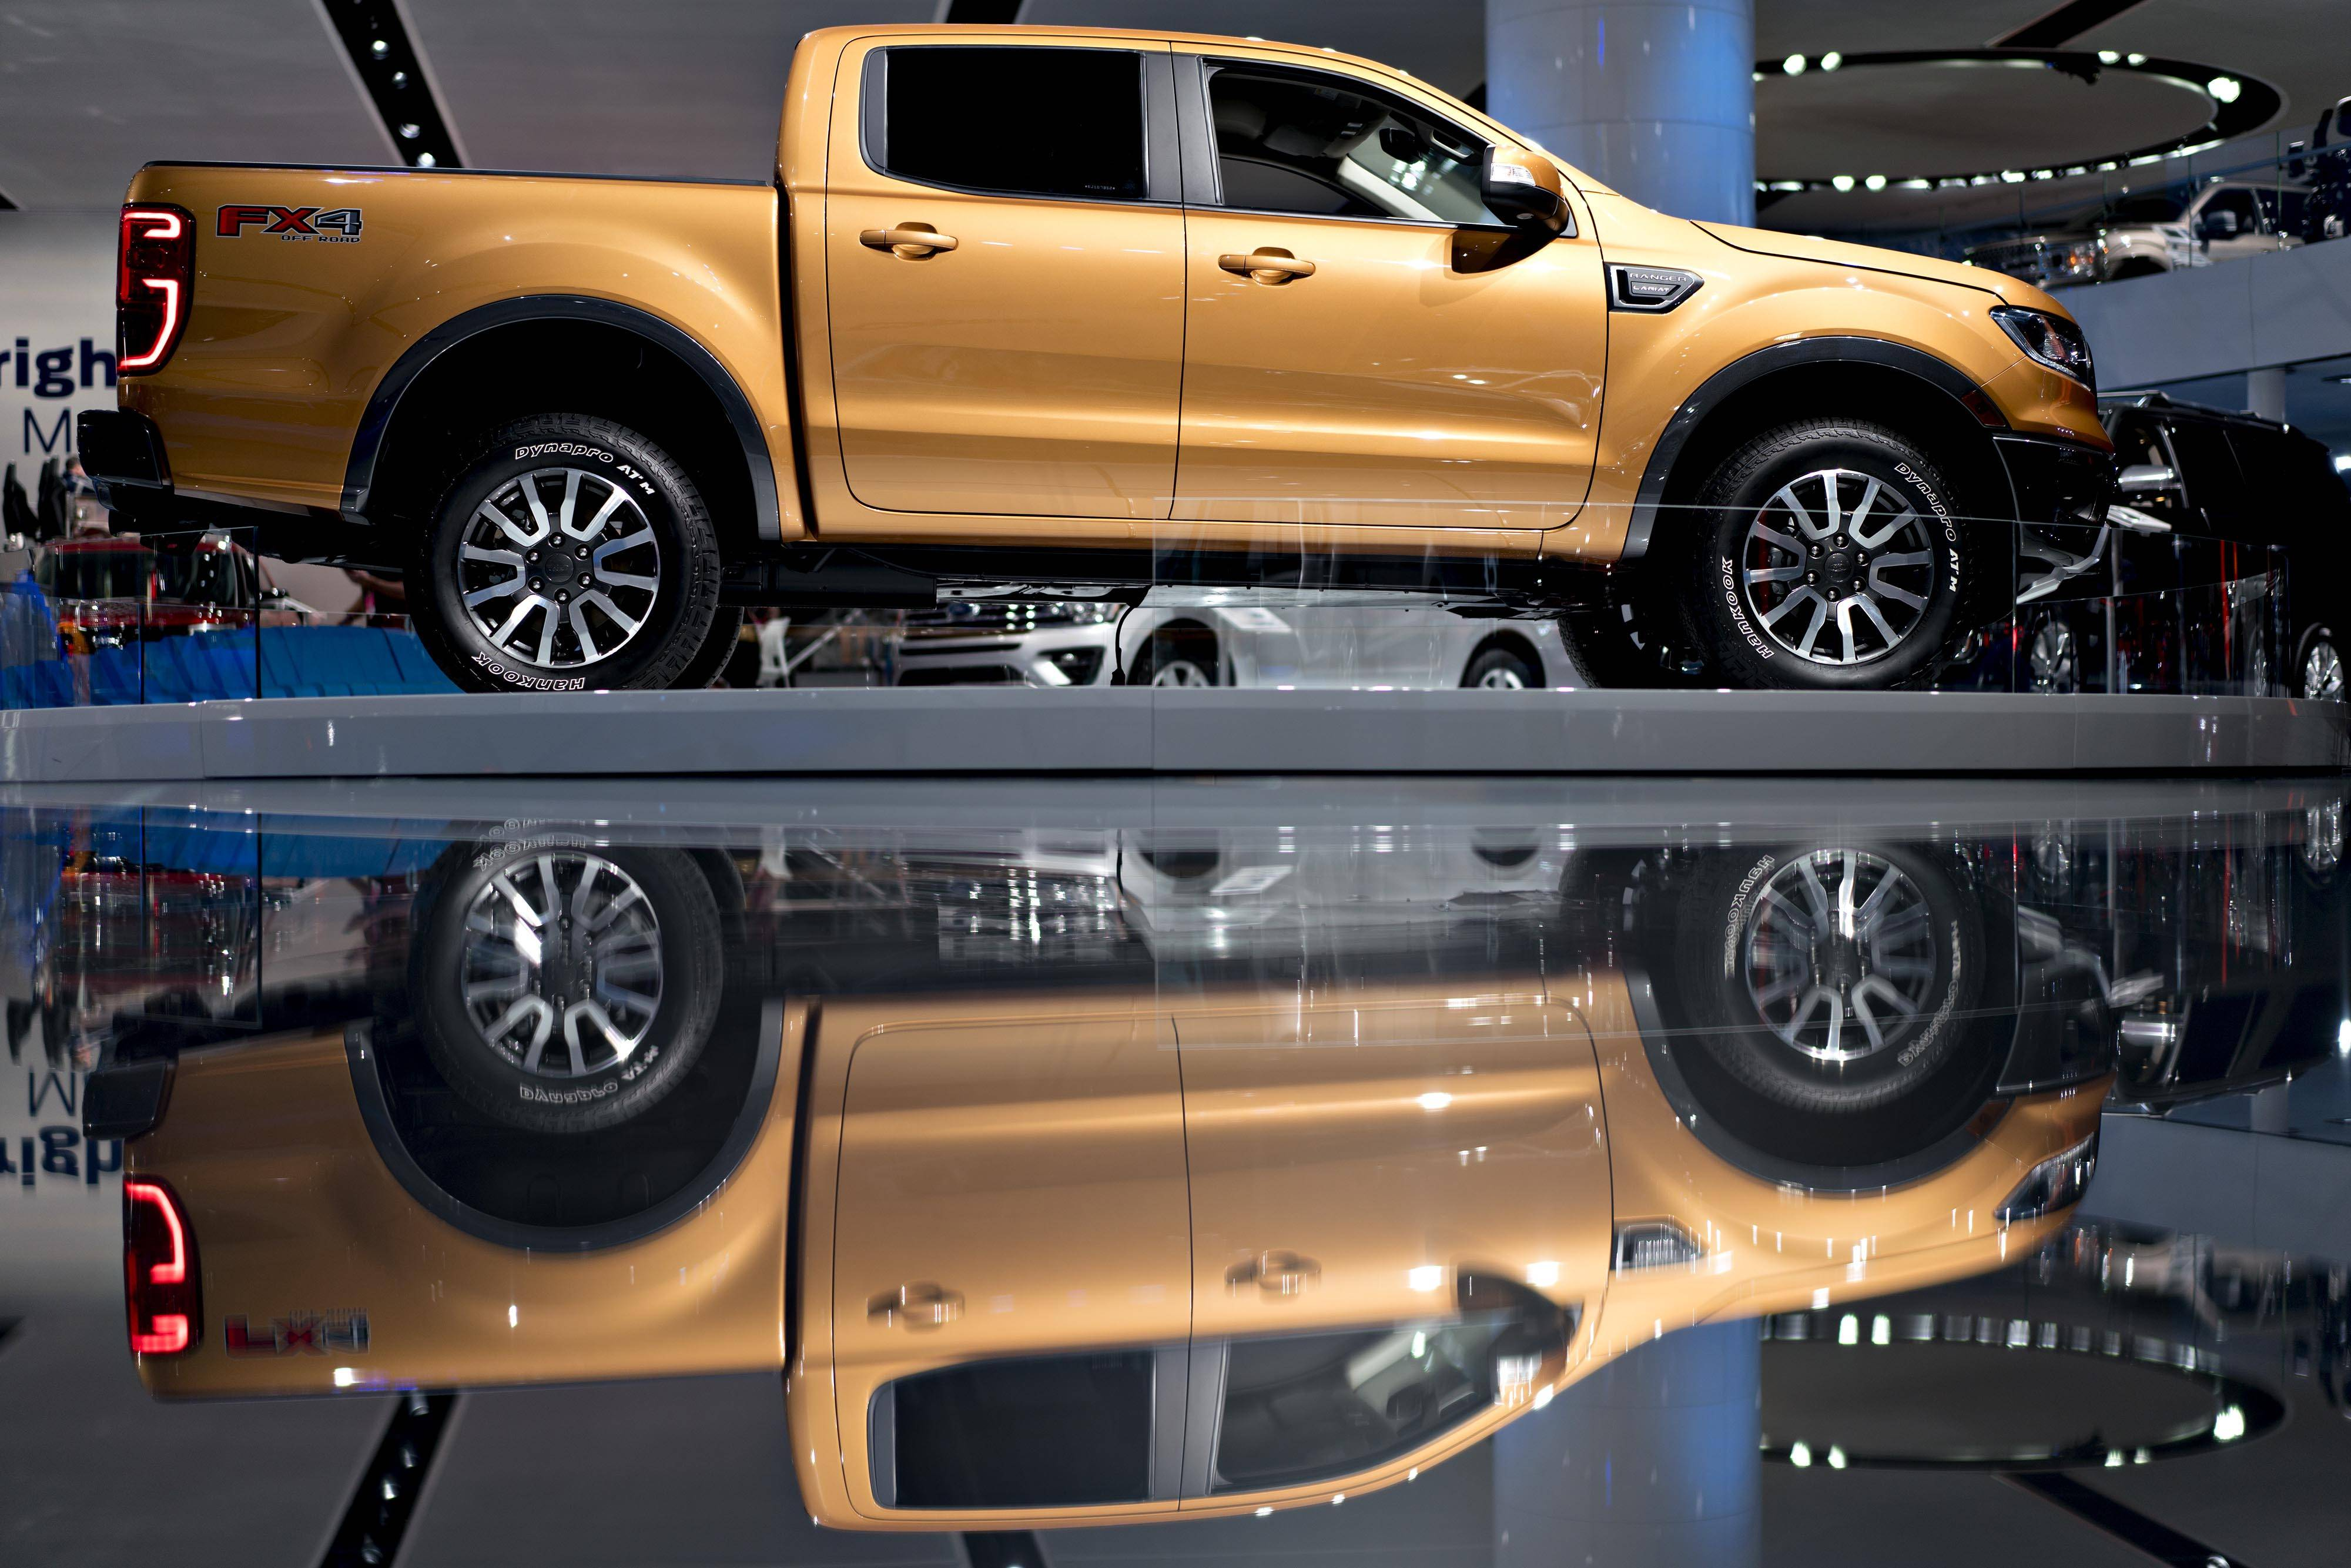 The 2019 Ford Motor Co. Ranger mid-size pickup truck is displayed during the 2018 North American International Auto Show in Detroit on Jan. 16, 2018. General Motors, Ford and Fiat Chrysler all stormed into show with overhauled pickups.